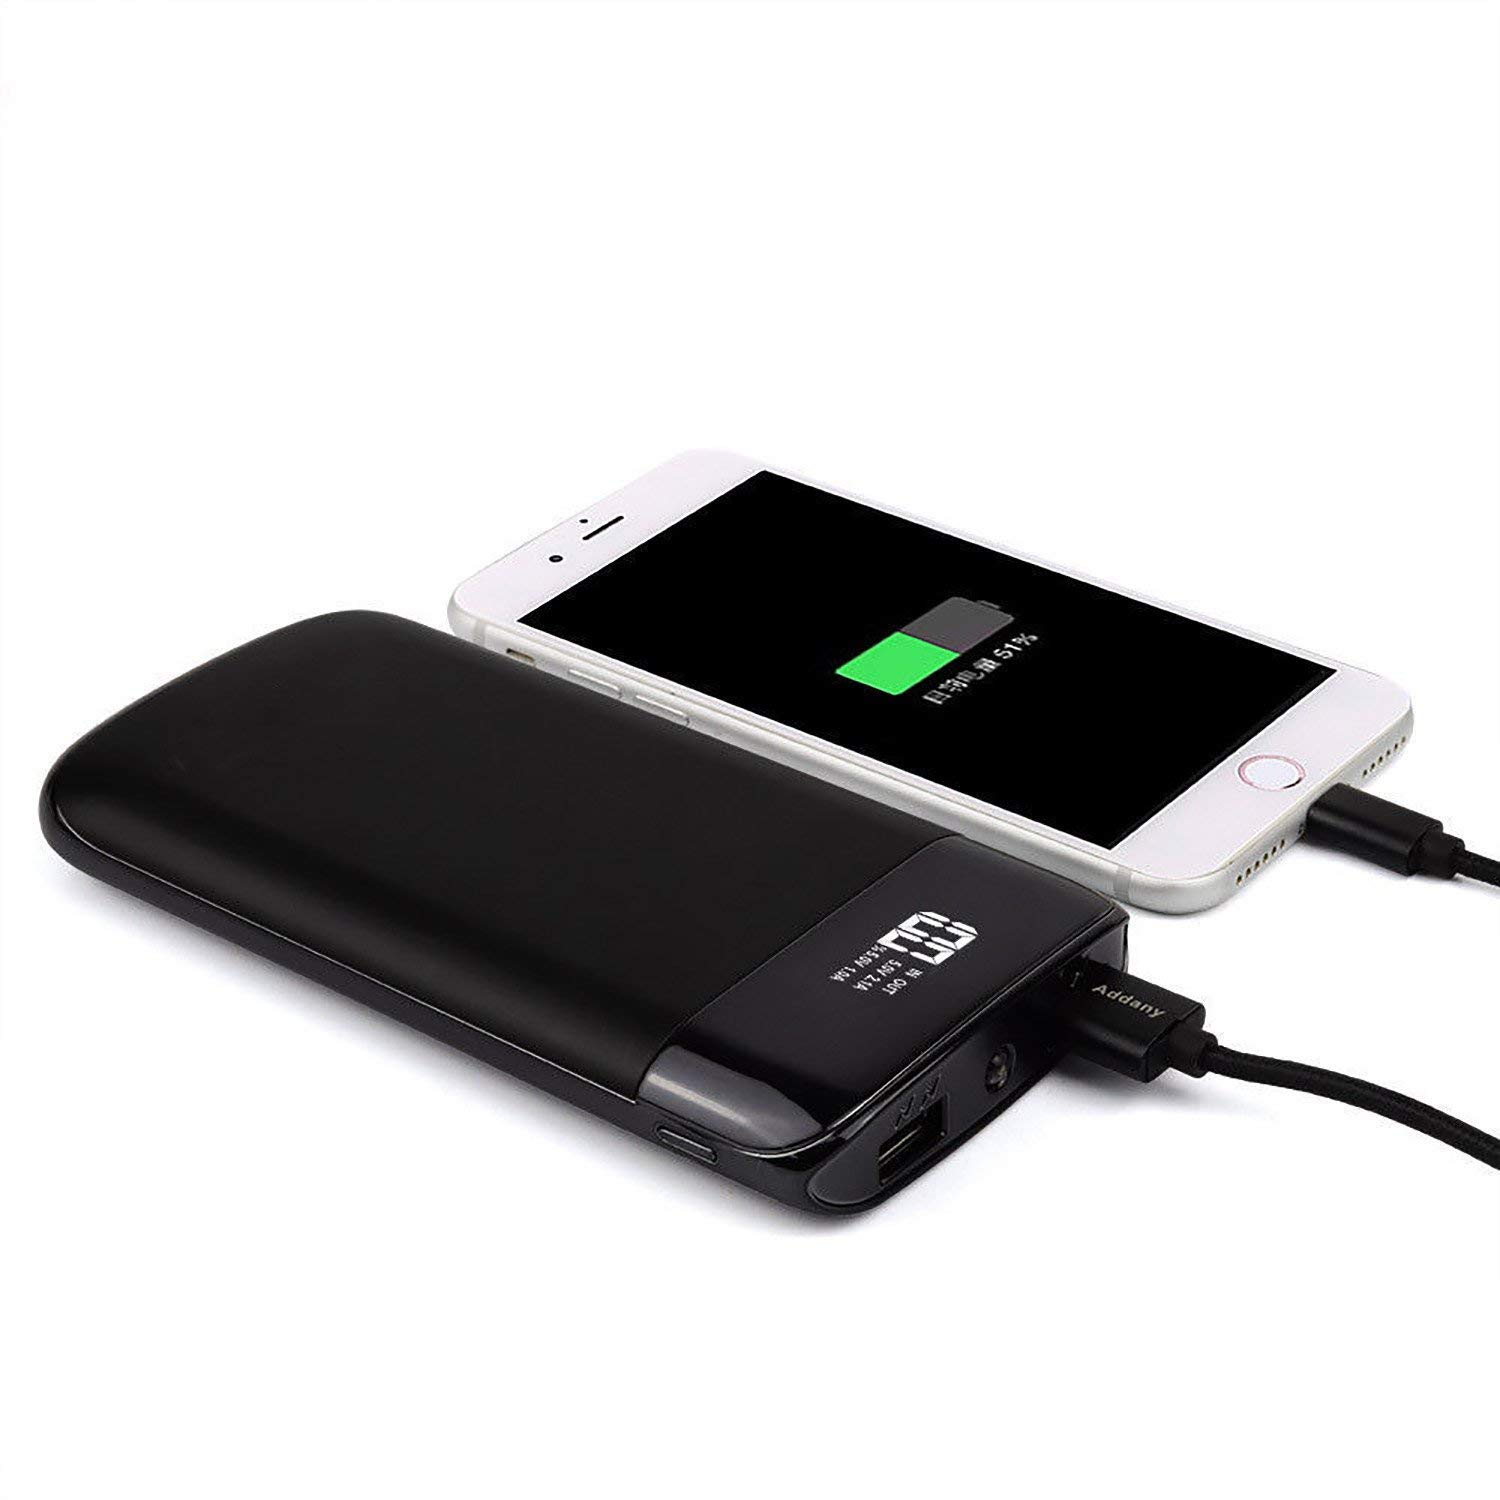 Iphone portable battery charger cutting tile on wall